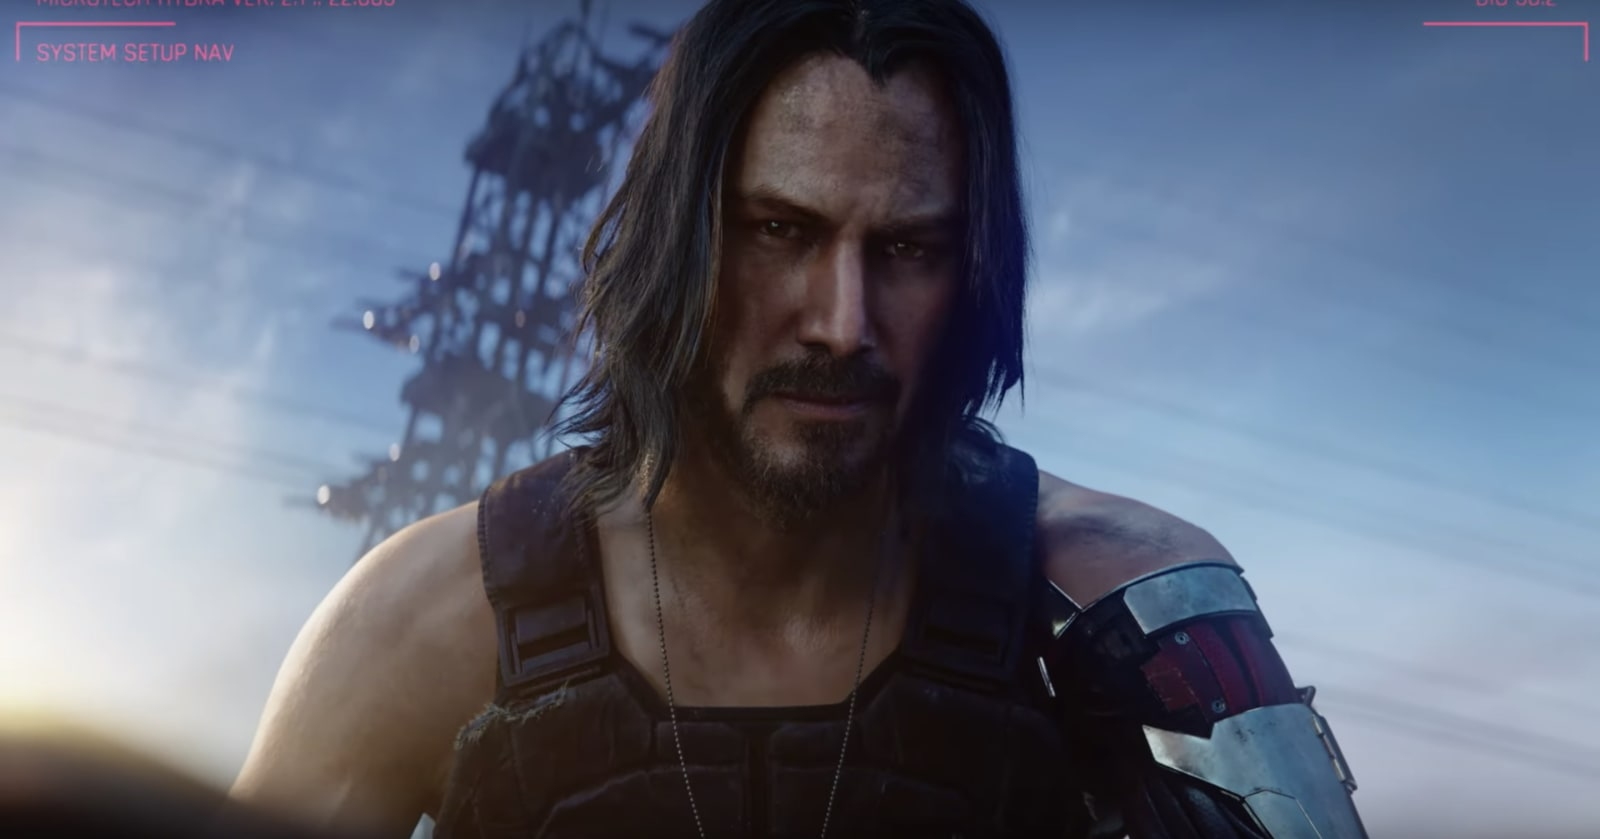 'Cyberpunk 2077' comes out next April, and Keanu Reeves is in it